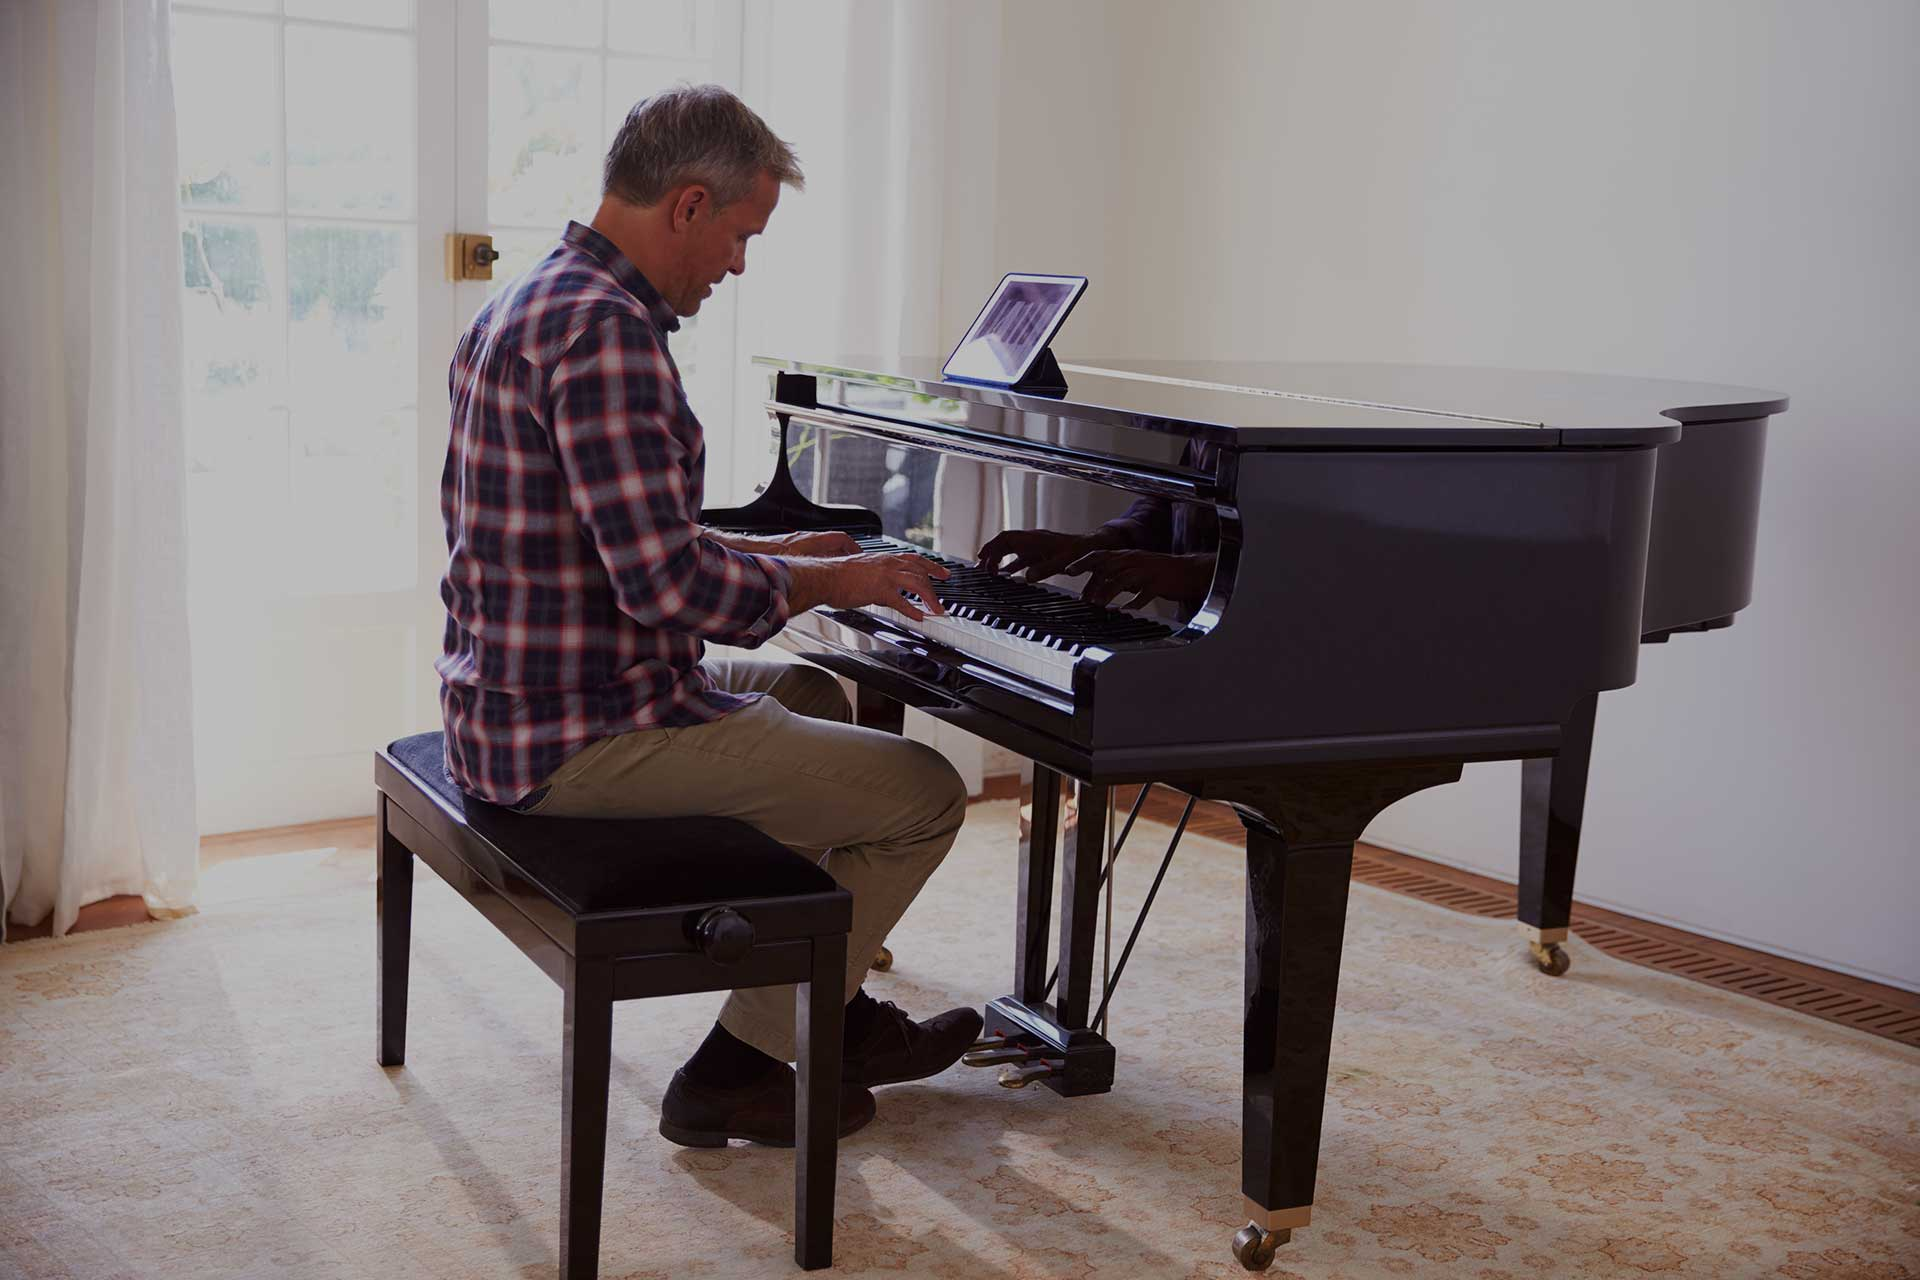 Man learning the piano via a tablet